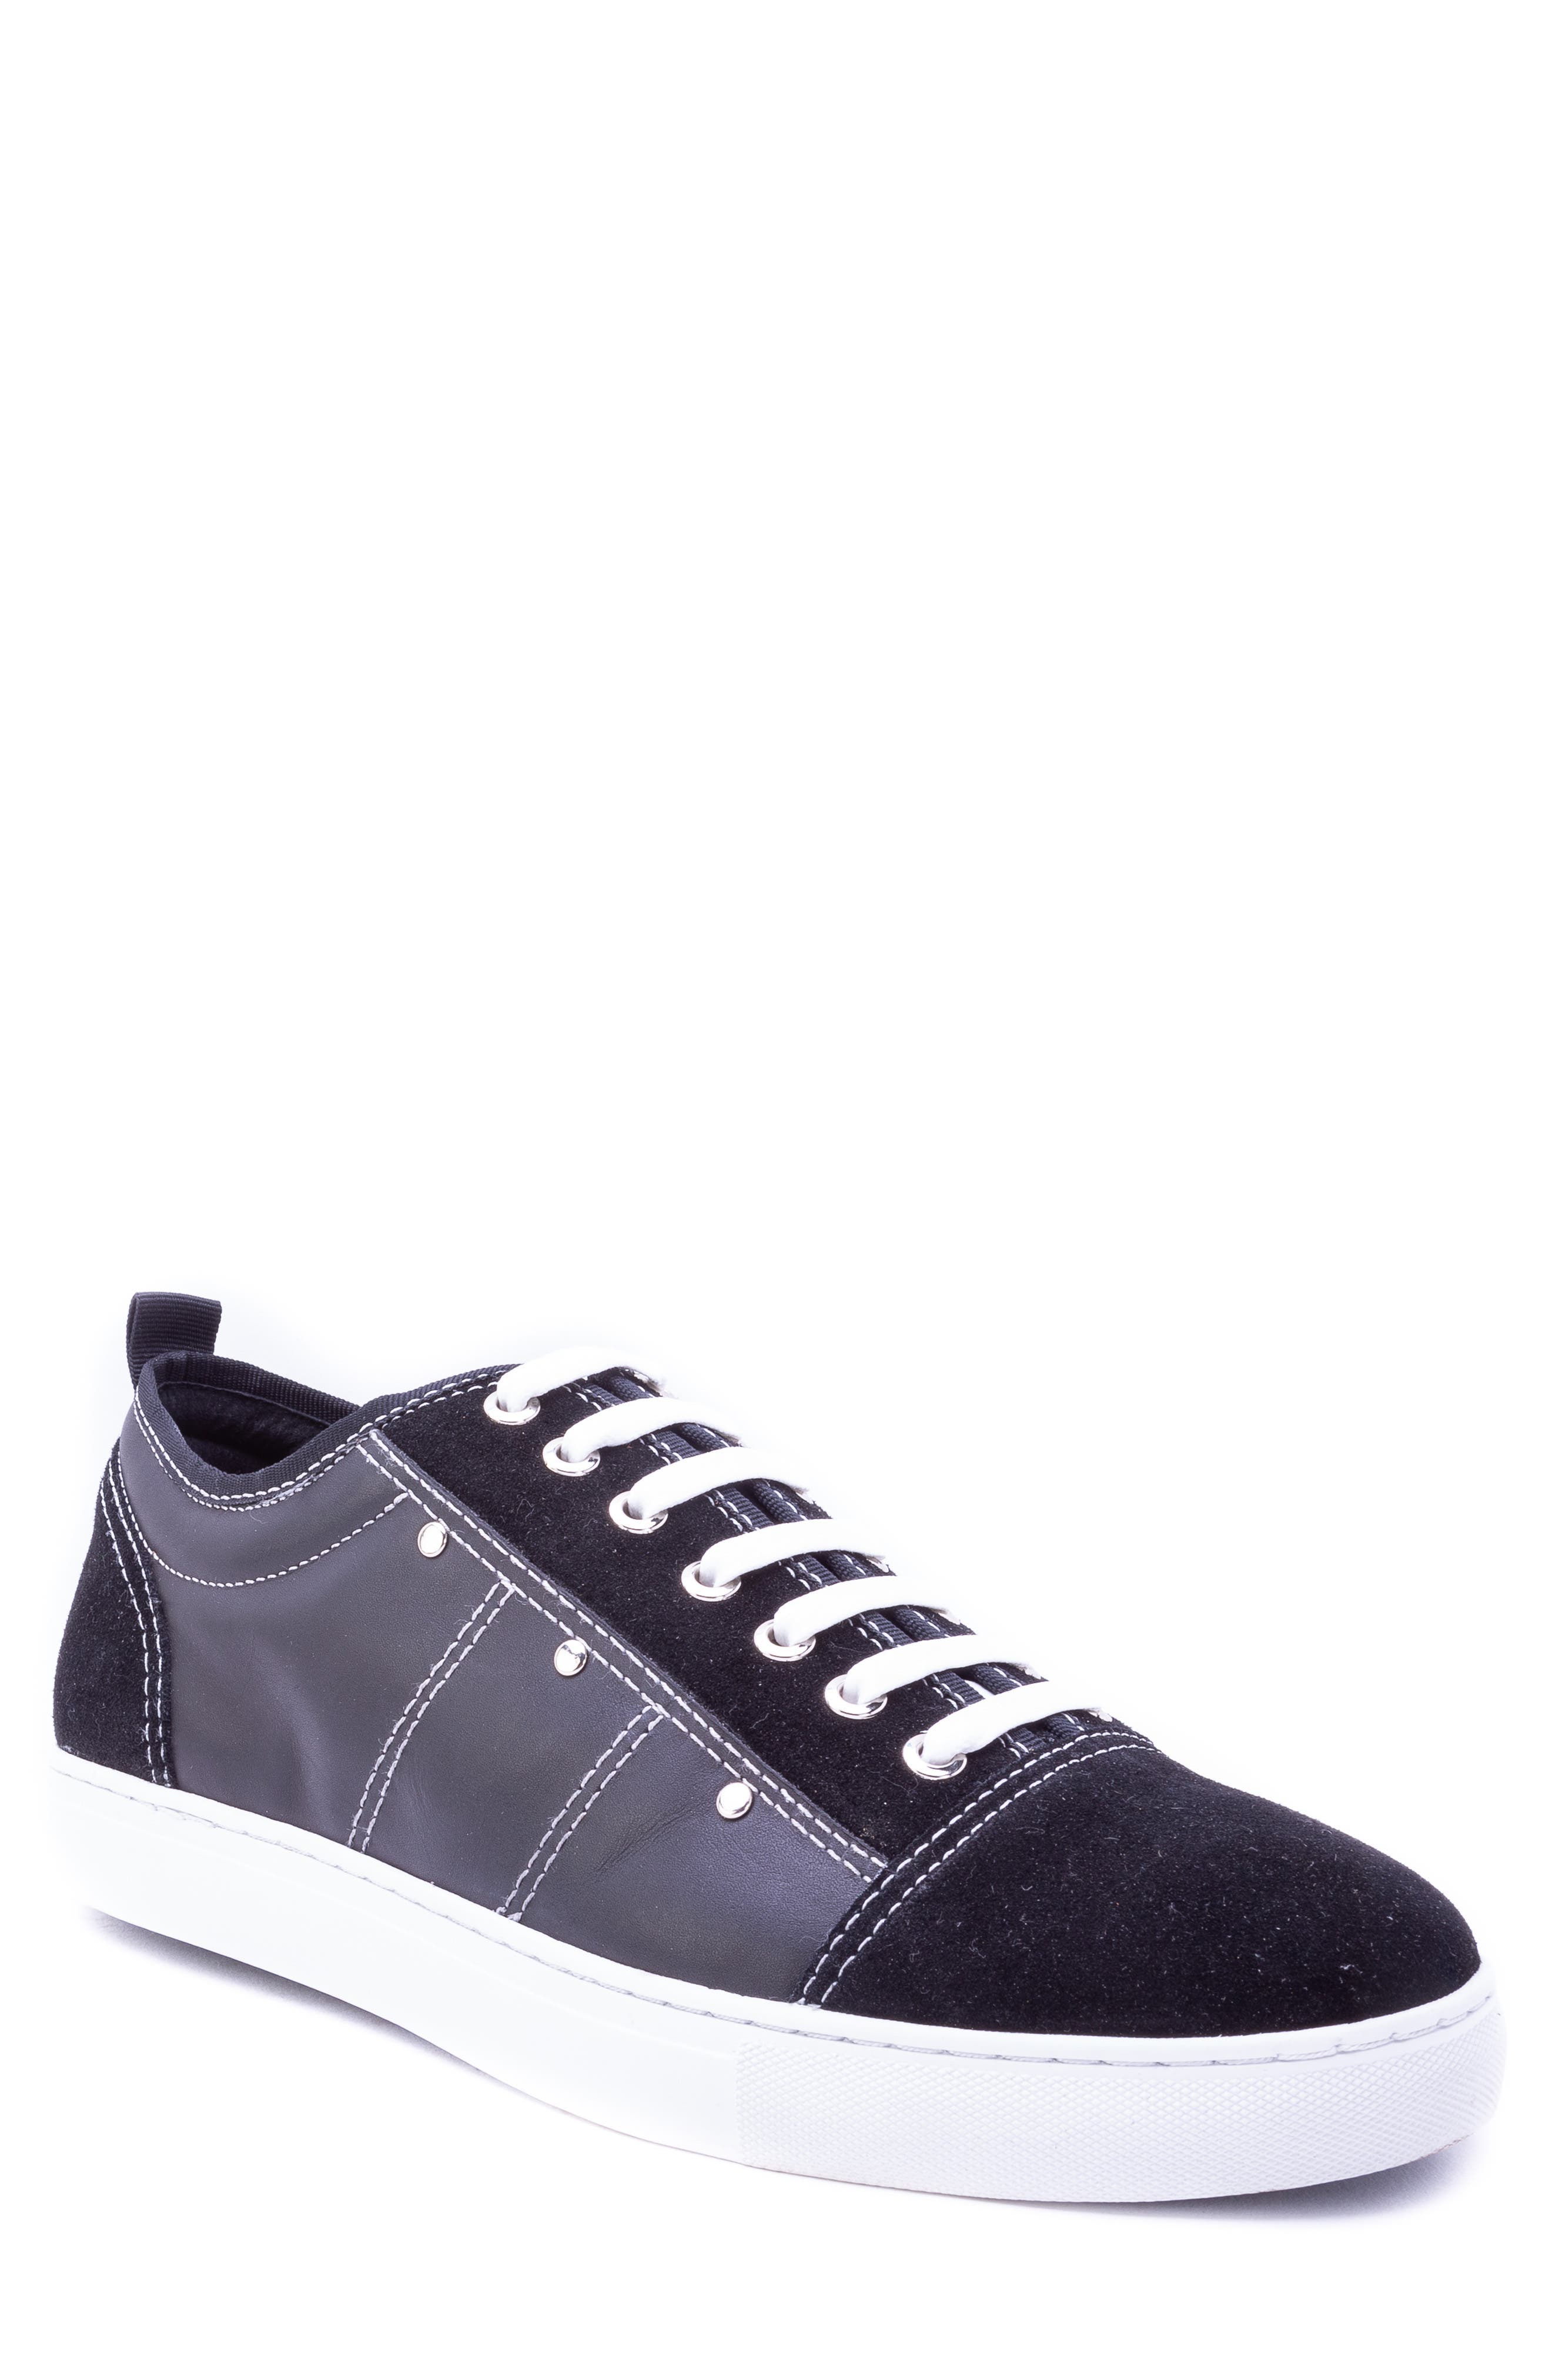 Severn Studded Low Top Sneaker,                         Main,                         color, BLACK SUEDE/ LEATHER